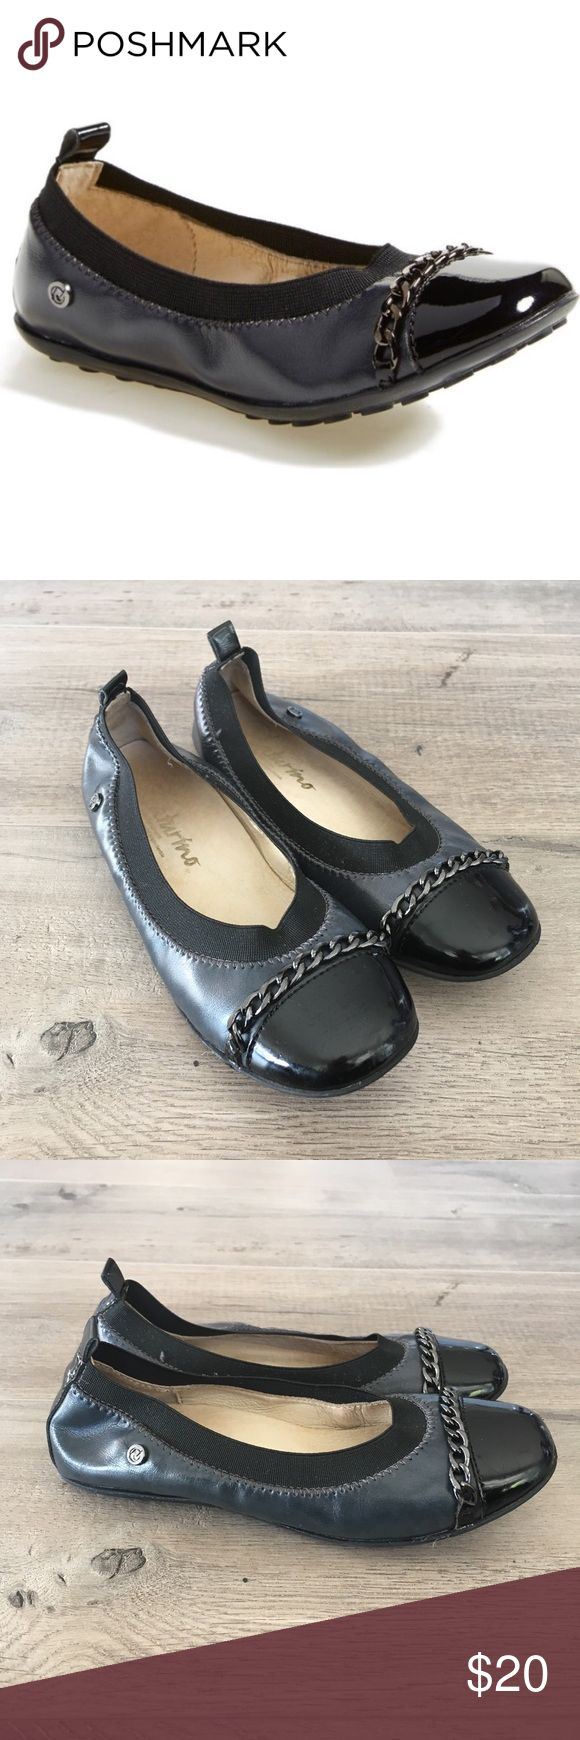 NATURINO ~ girls black ballet flats chain detail NATURINO ~   NATURINO brand  Kids shoes  Black ballet flats  Leather flats  Patent toe  Chain accent detail across toe  Size 29  Preowned like new condition  No box made in Serbia Naturino Shoes Dress Shoes